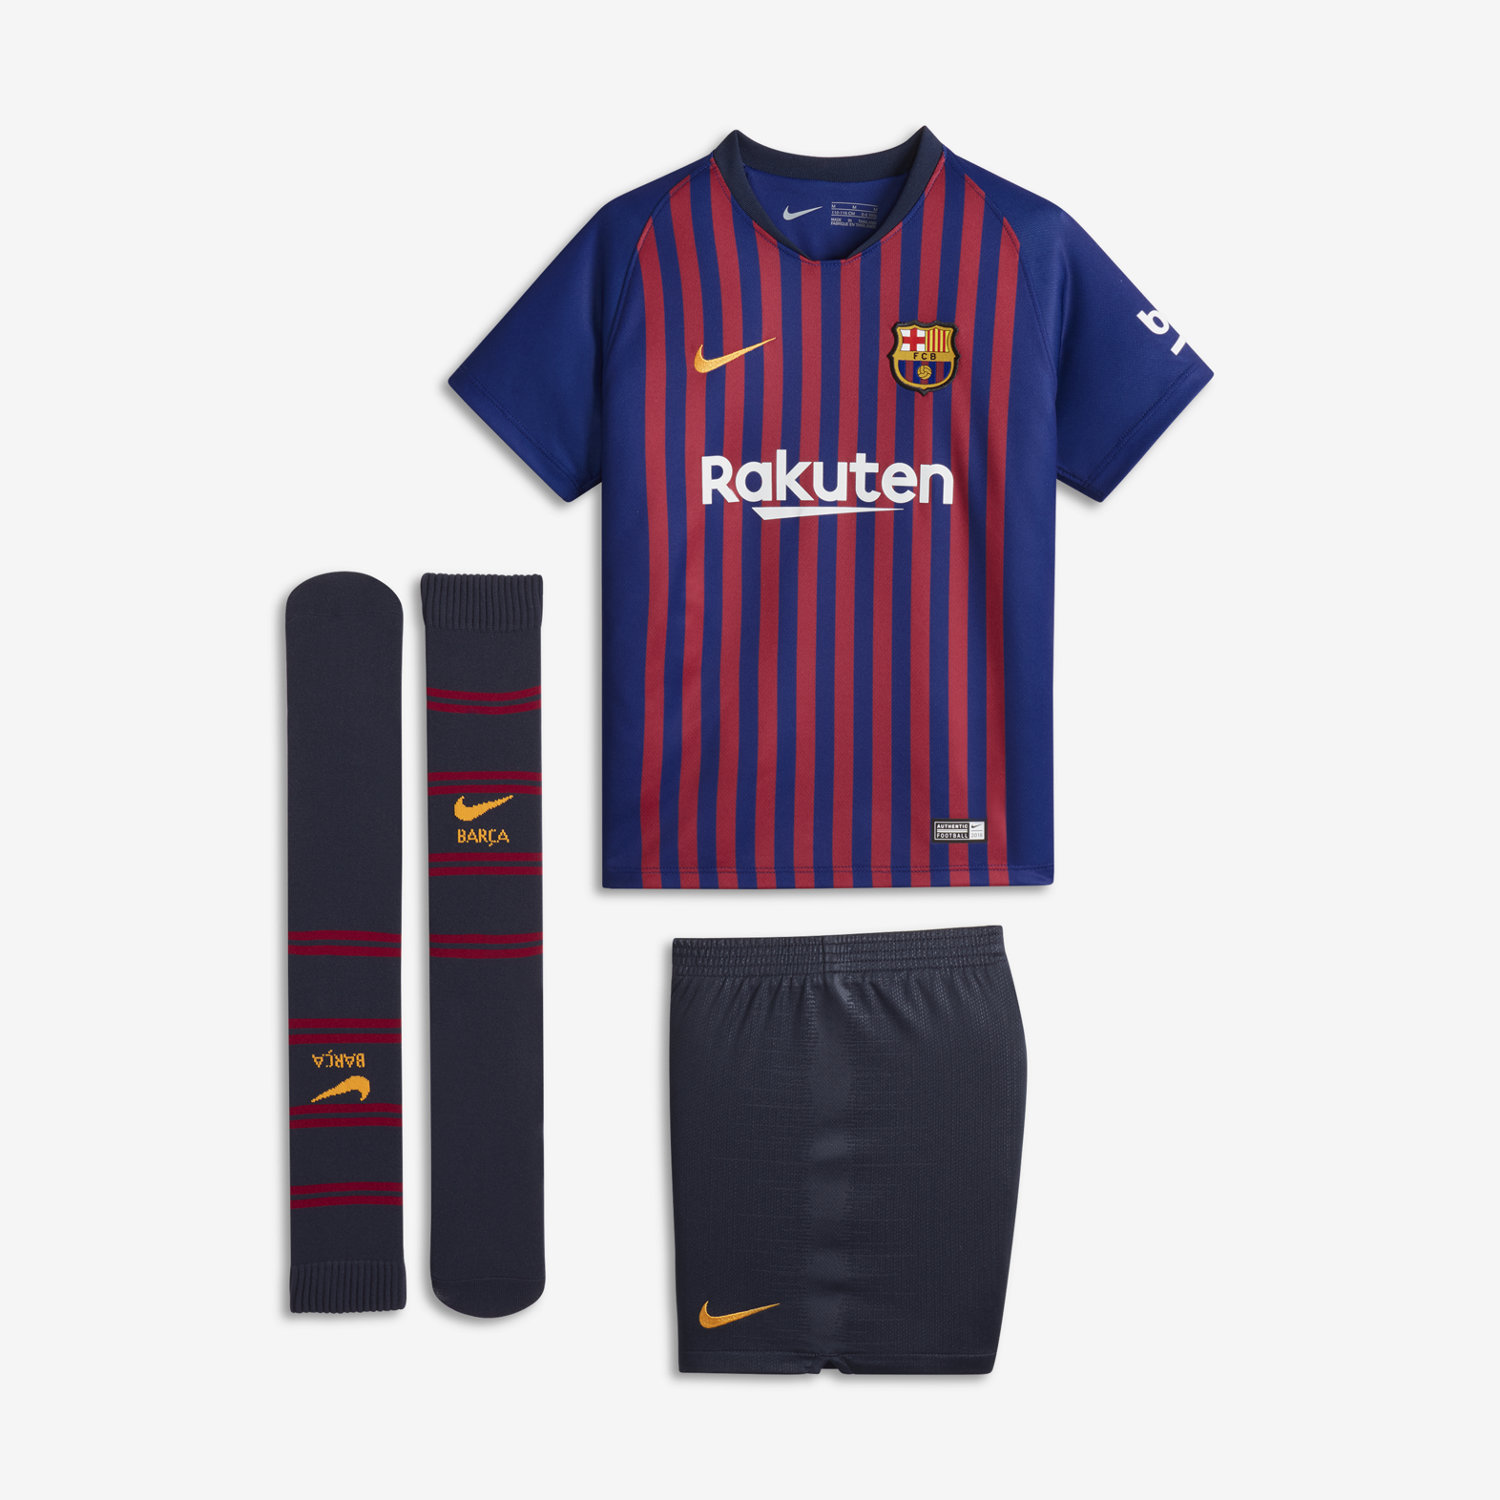 13ed1f8fd 2018 19 FC Barcelona Stadium Home Younger Kids  Football Kit. Nike ...